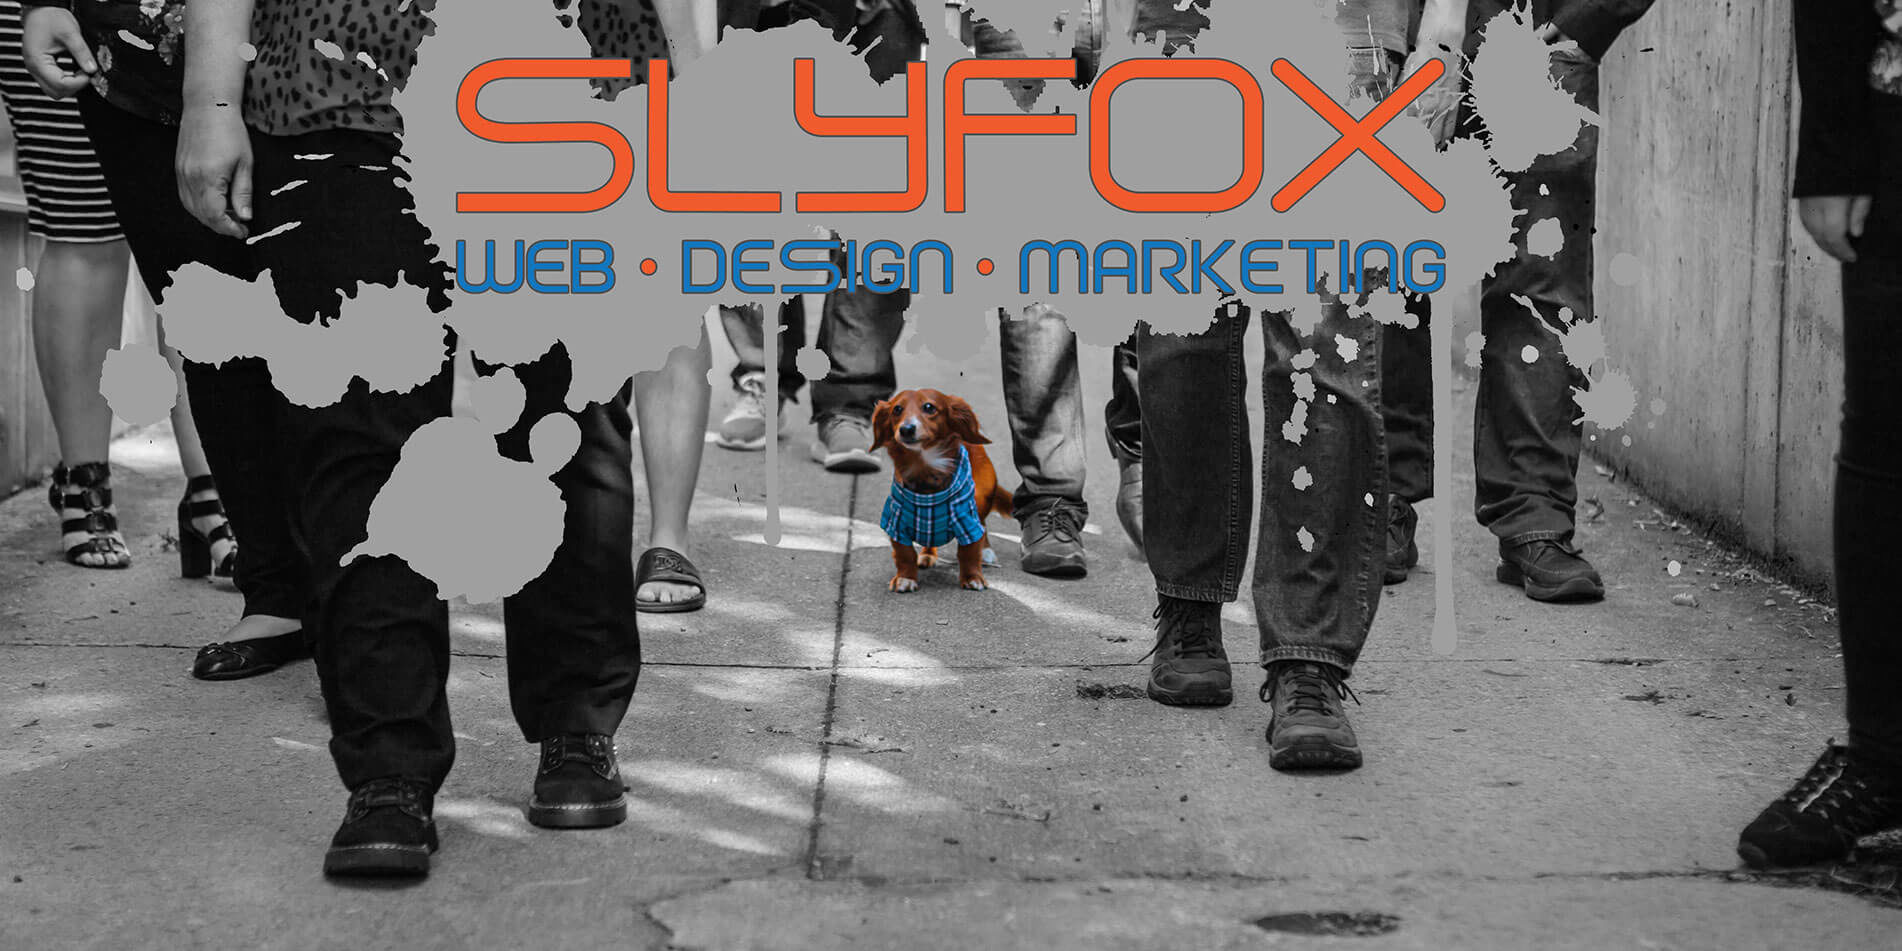 digital marketing, design team, web design team - SlyFox Web Design and Marketing